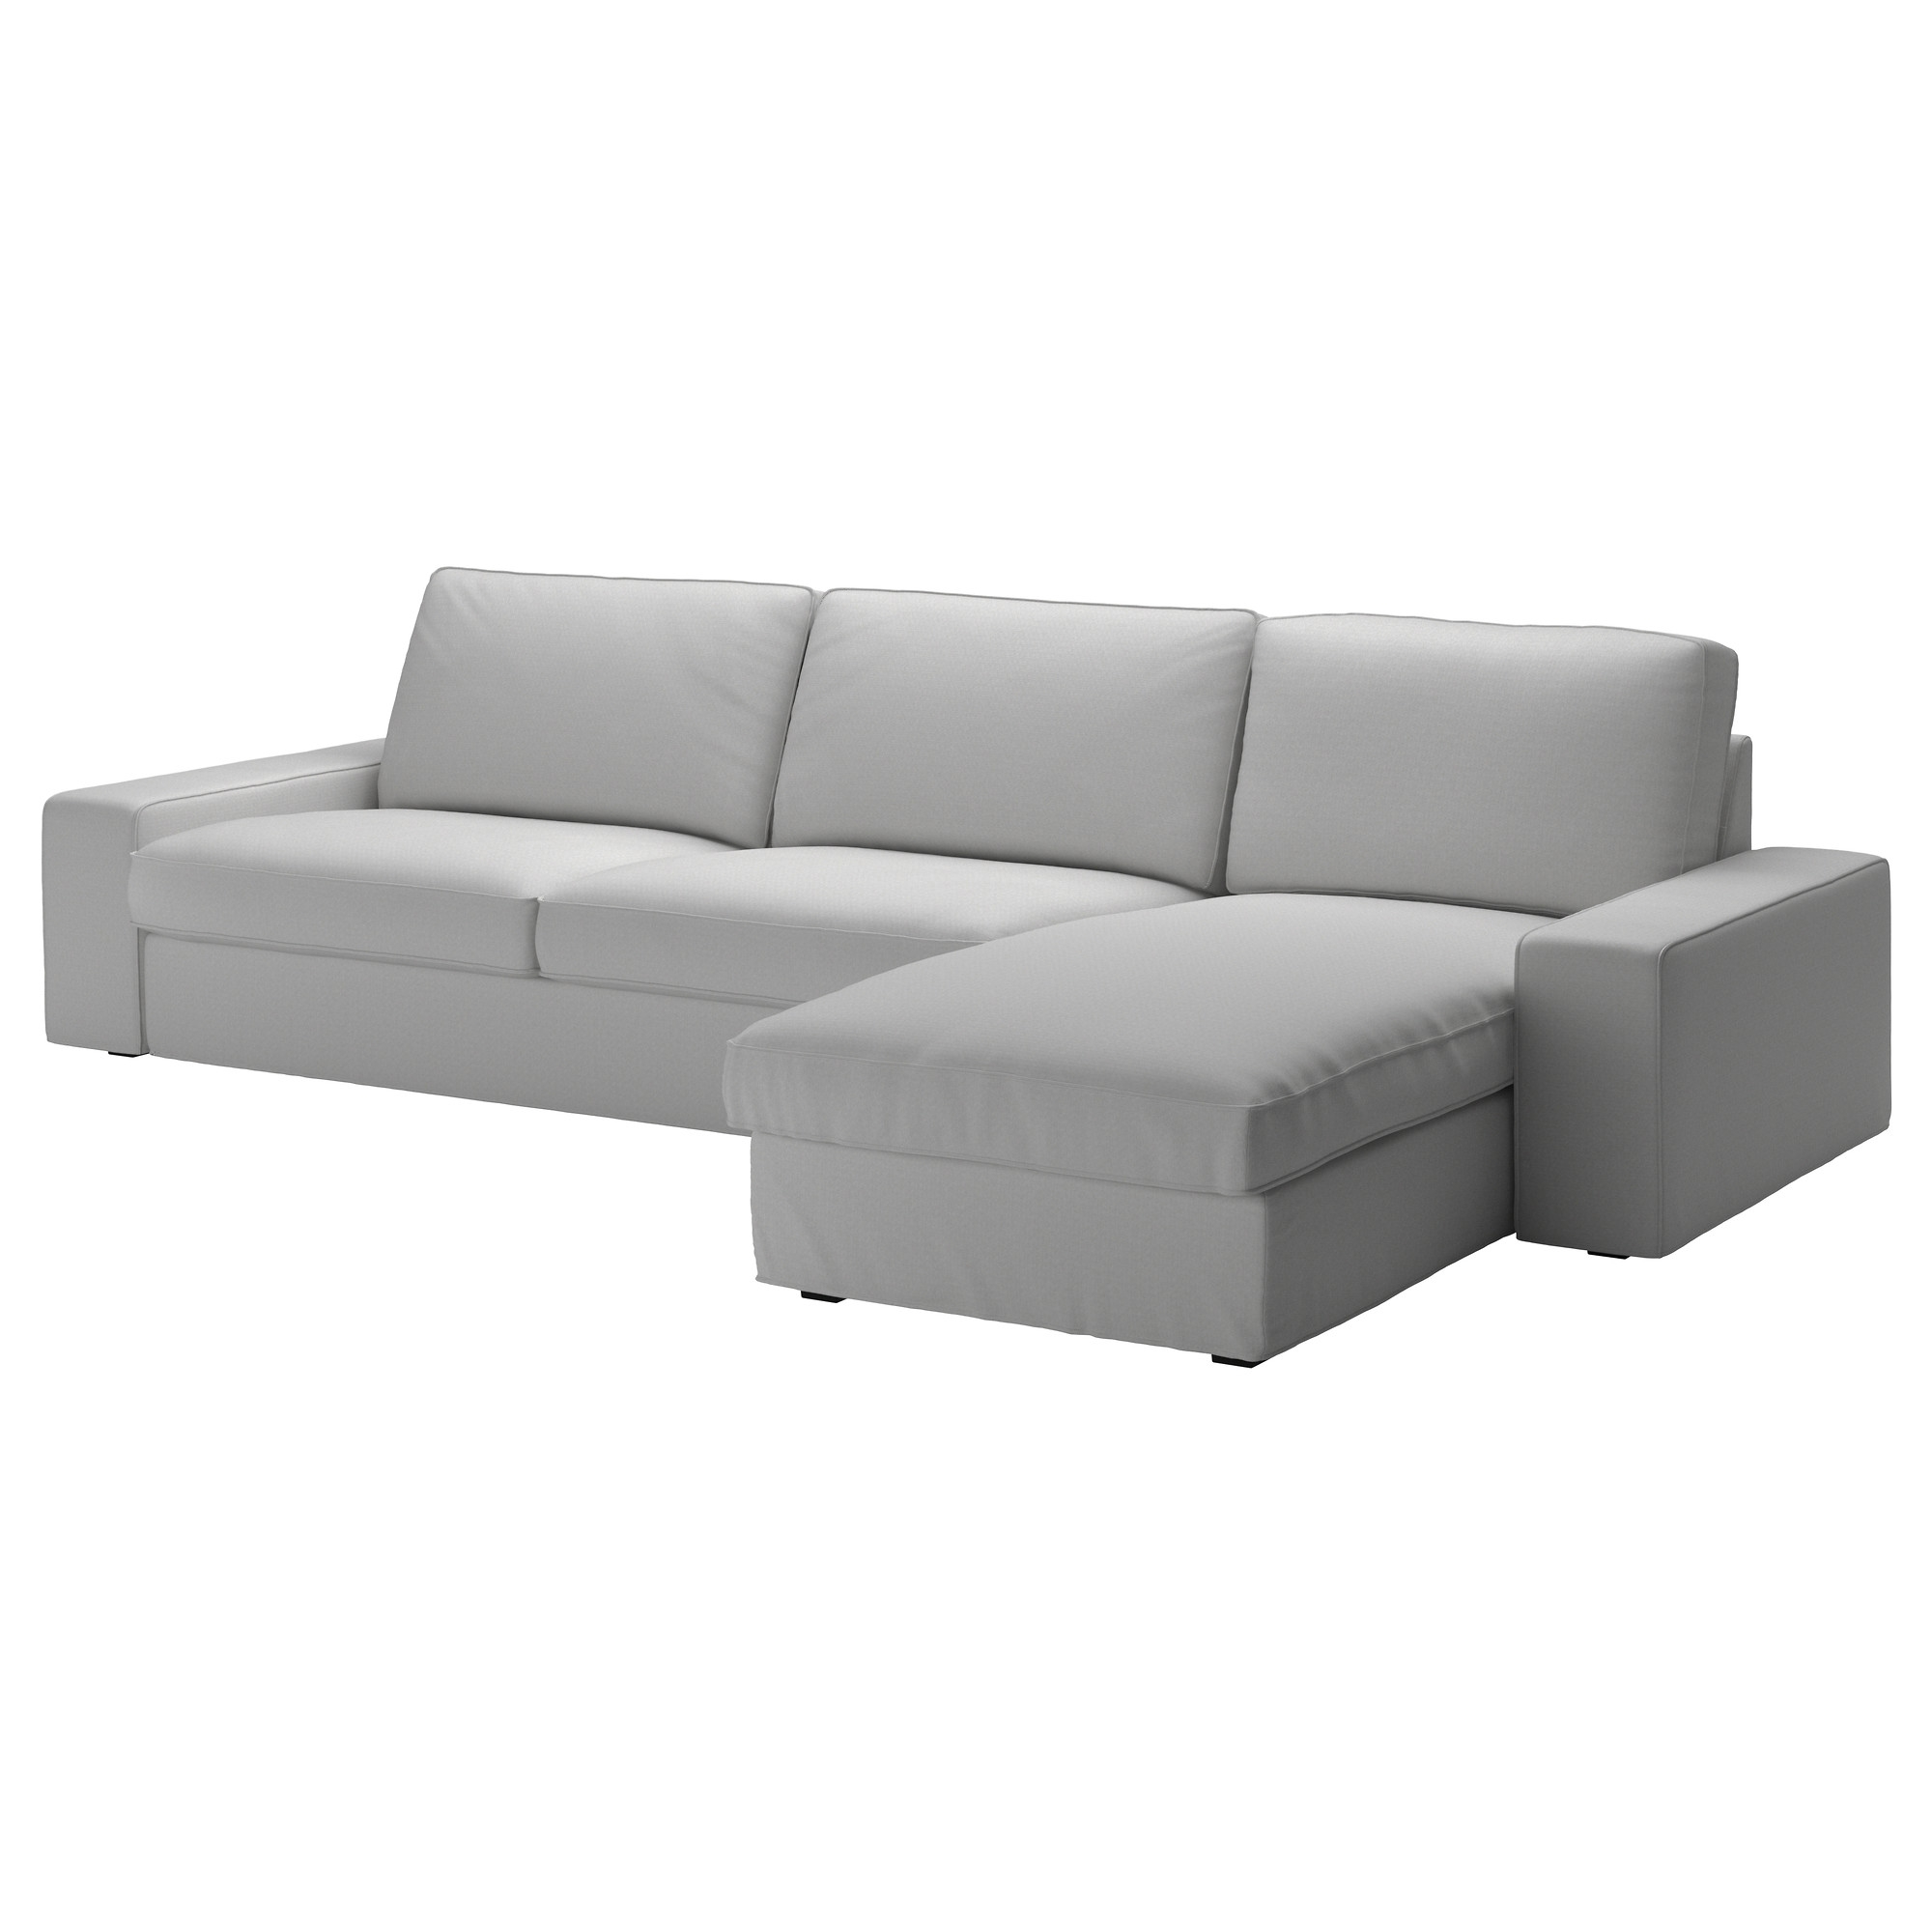 Sectional Sofas Couches Ikea For Compact Sectional Sofas (Image 10 of 15)